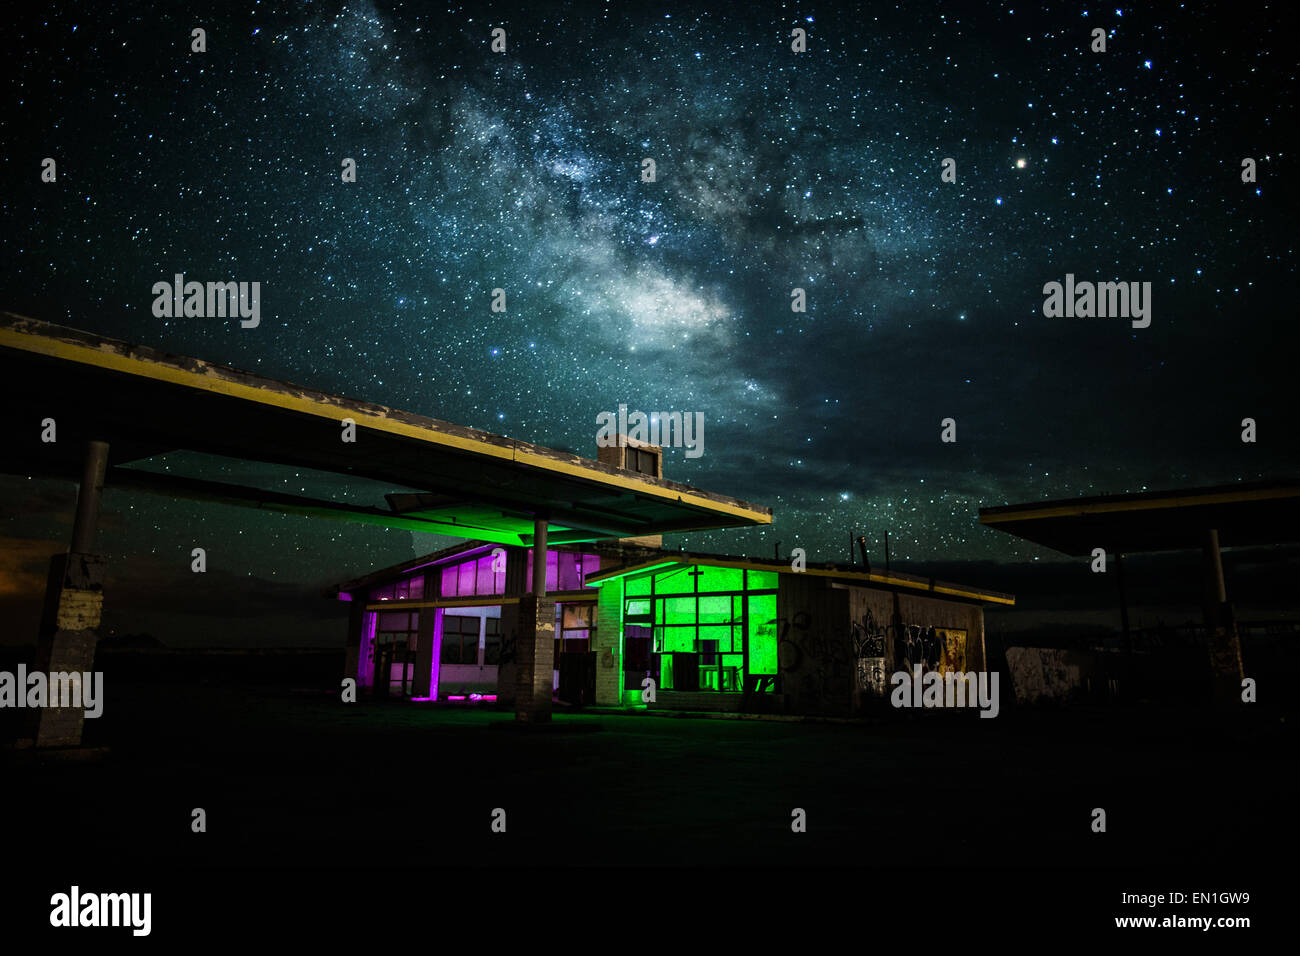 Gas Station Night High Resolution Stock Photography And Images Alamy